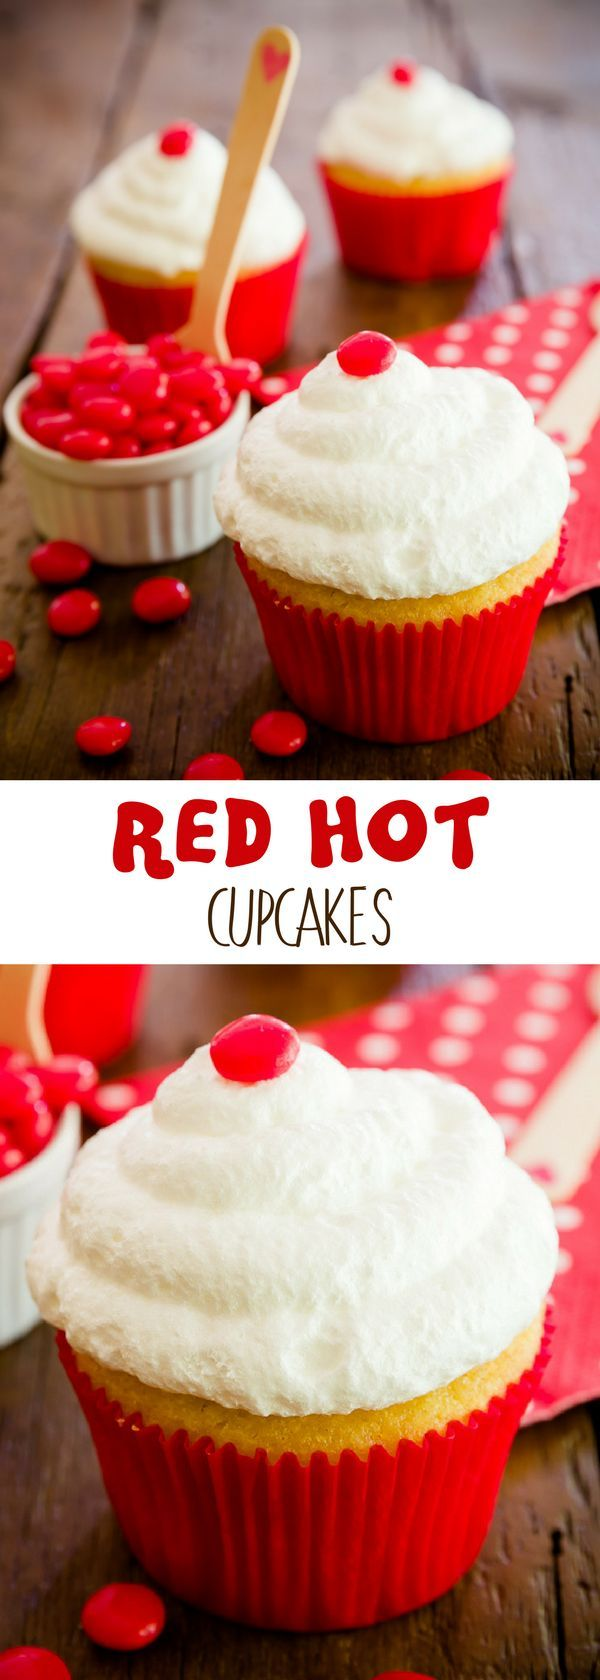 Red hot cupcakes are not for the faint of heart – they are, well, red hot and spicy! For more simple baking desserts recipes and homemade sweet treats, check us out at #cupcakeproject. #desserts #yummydesserts #recipeoftheday #sweettooth